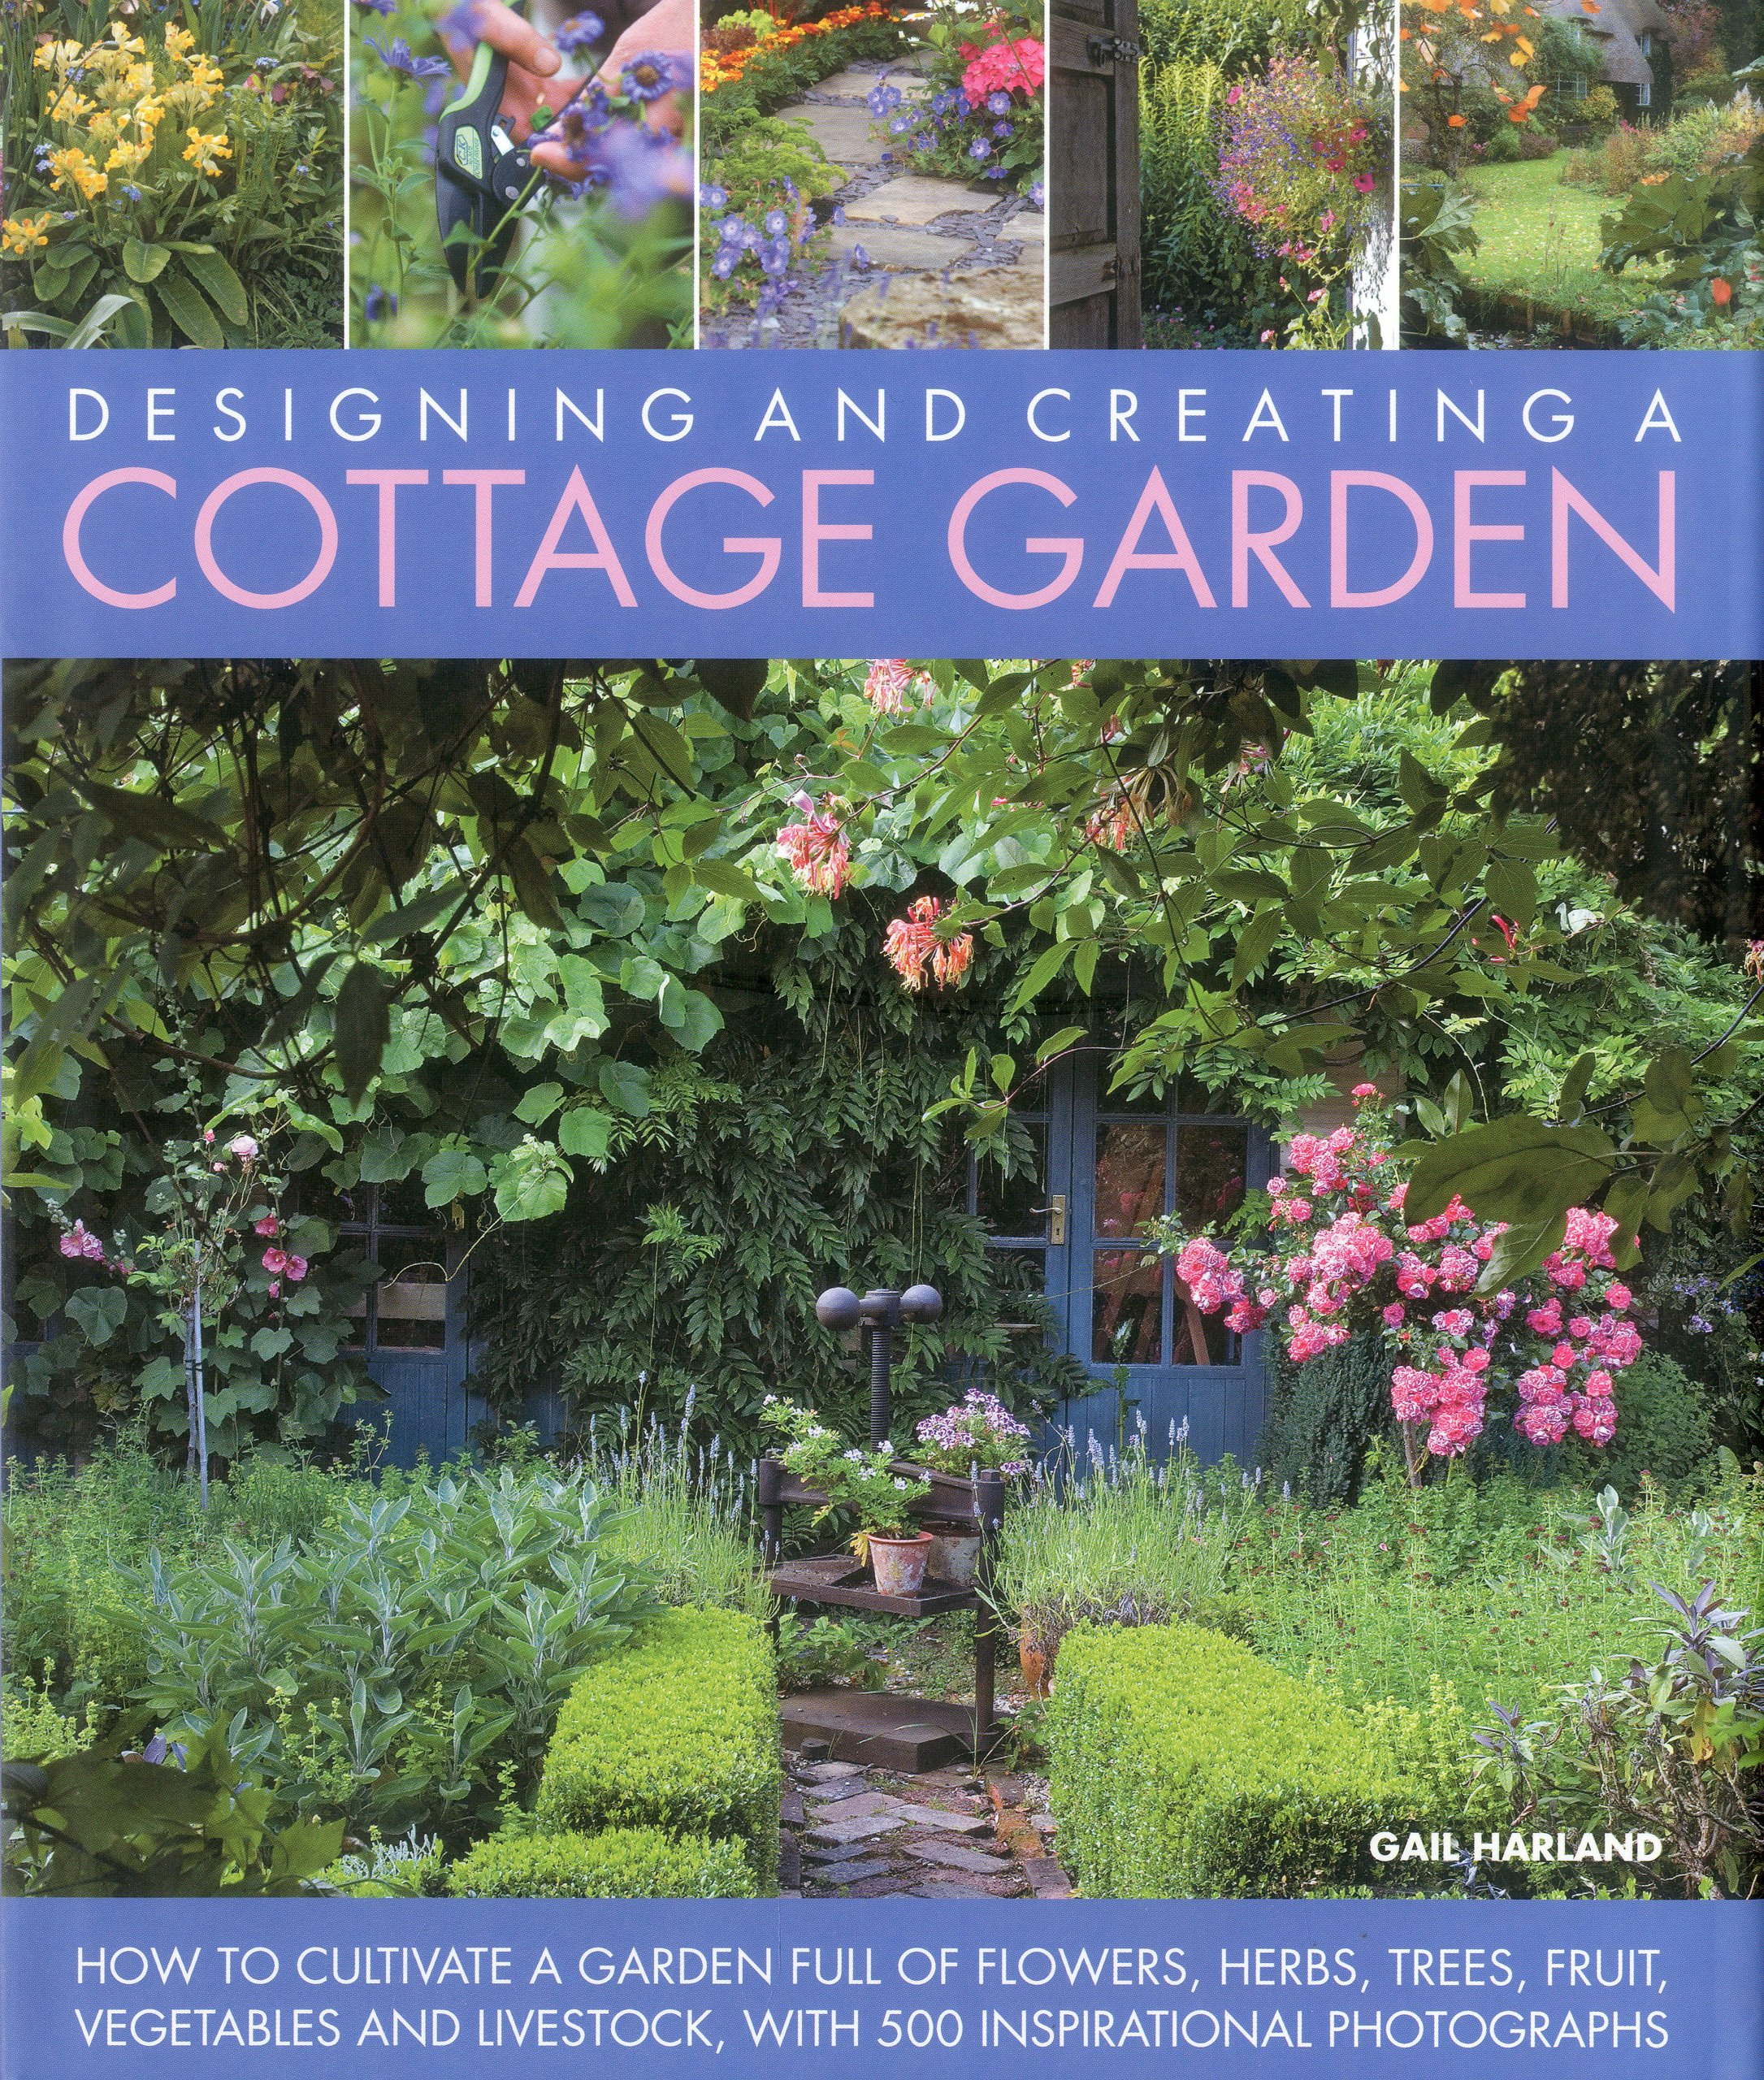 Designing And Creating A Cottage Garden: How To Cultivate A Garden Full Of  Flowers, Herbs, Trees, Fruit, Vegetables And Livestock, With 300  Inspirational ...